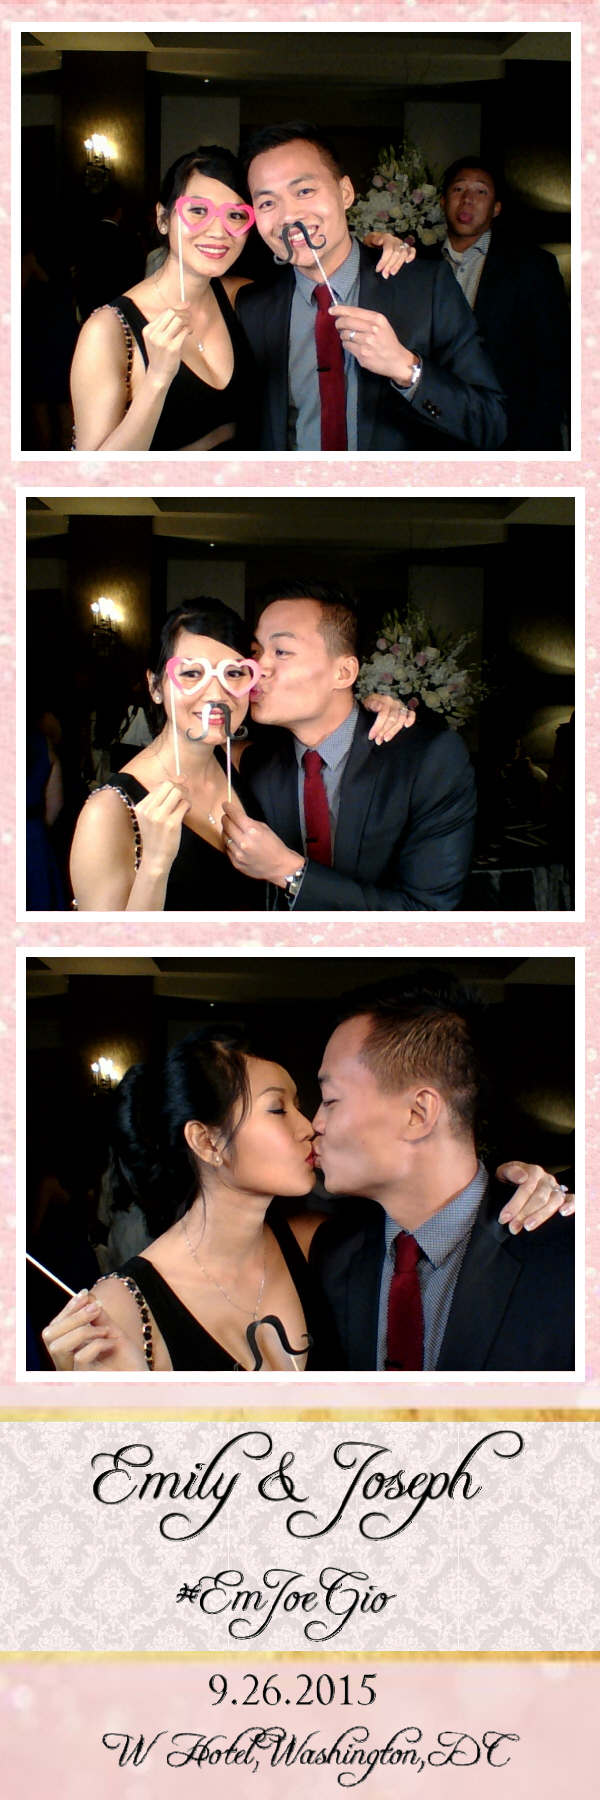 Guest House Events Photo Booth E&J (64).jpg